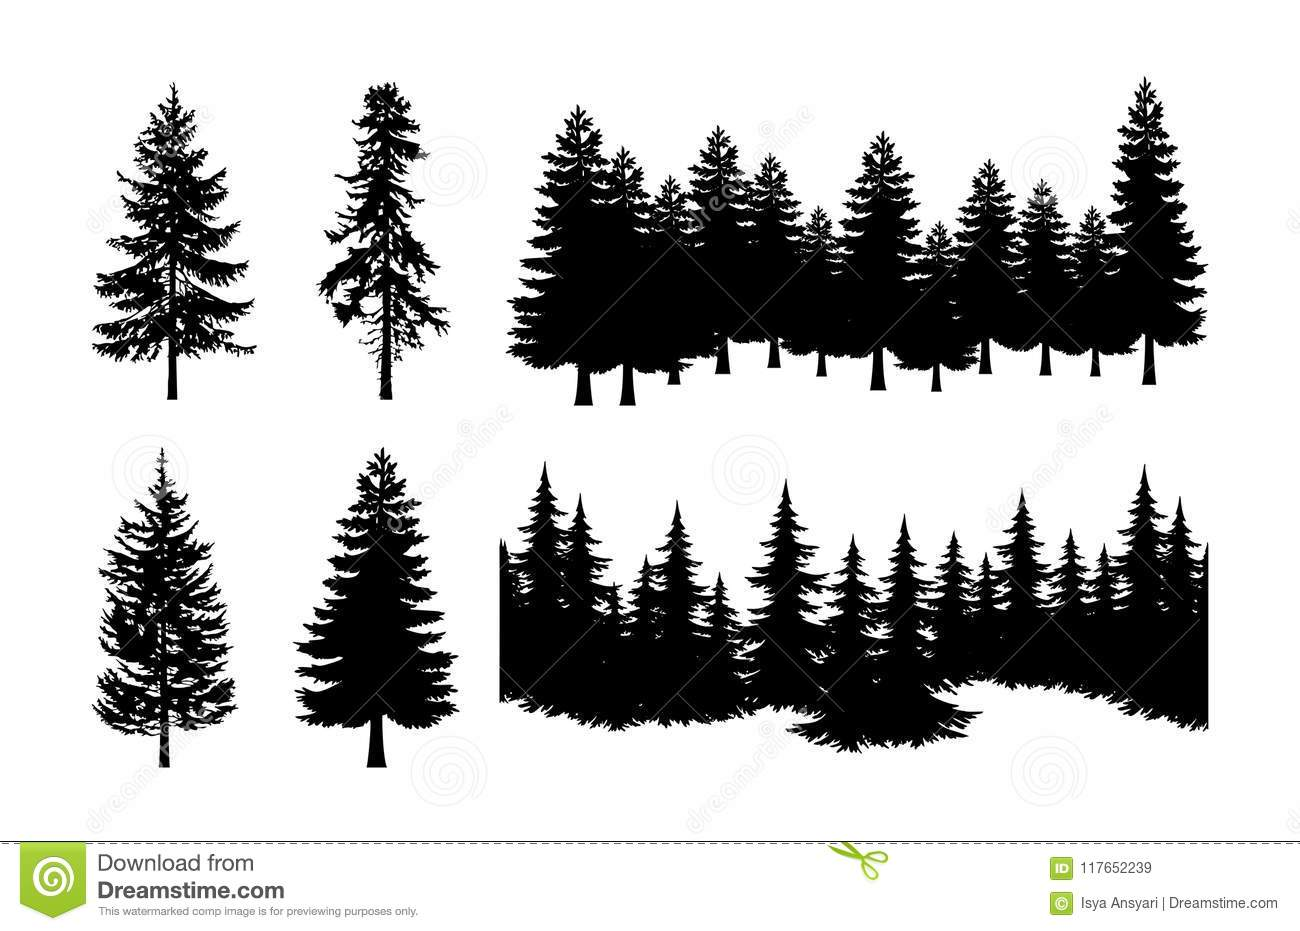 Pine Tree Silhouette Stock Illustrations 32 754 Pine Tree Silhouette Stock Illustrations Vectors Clipart Dreamstime